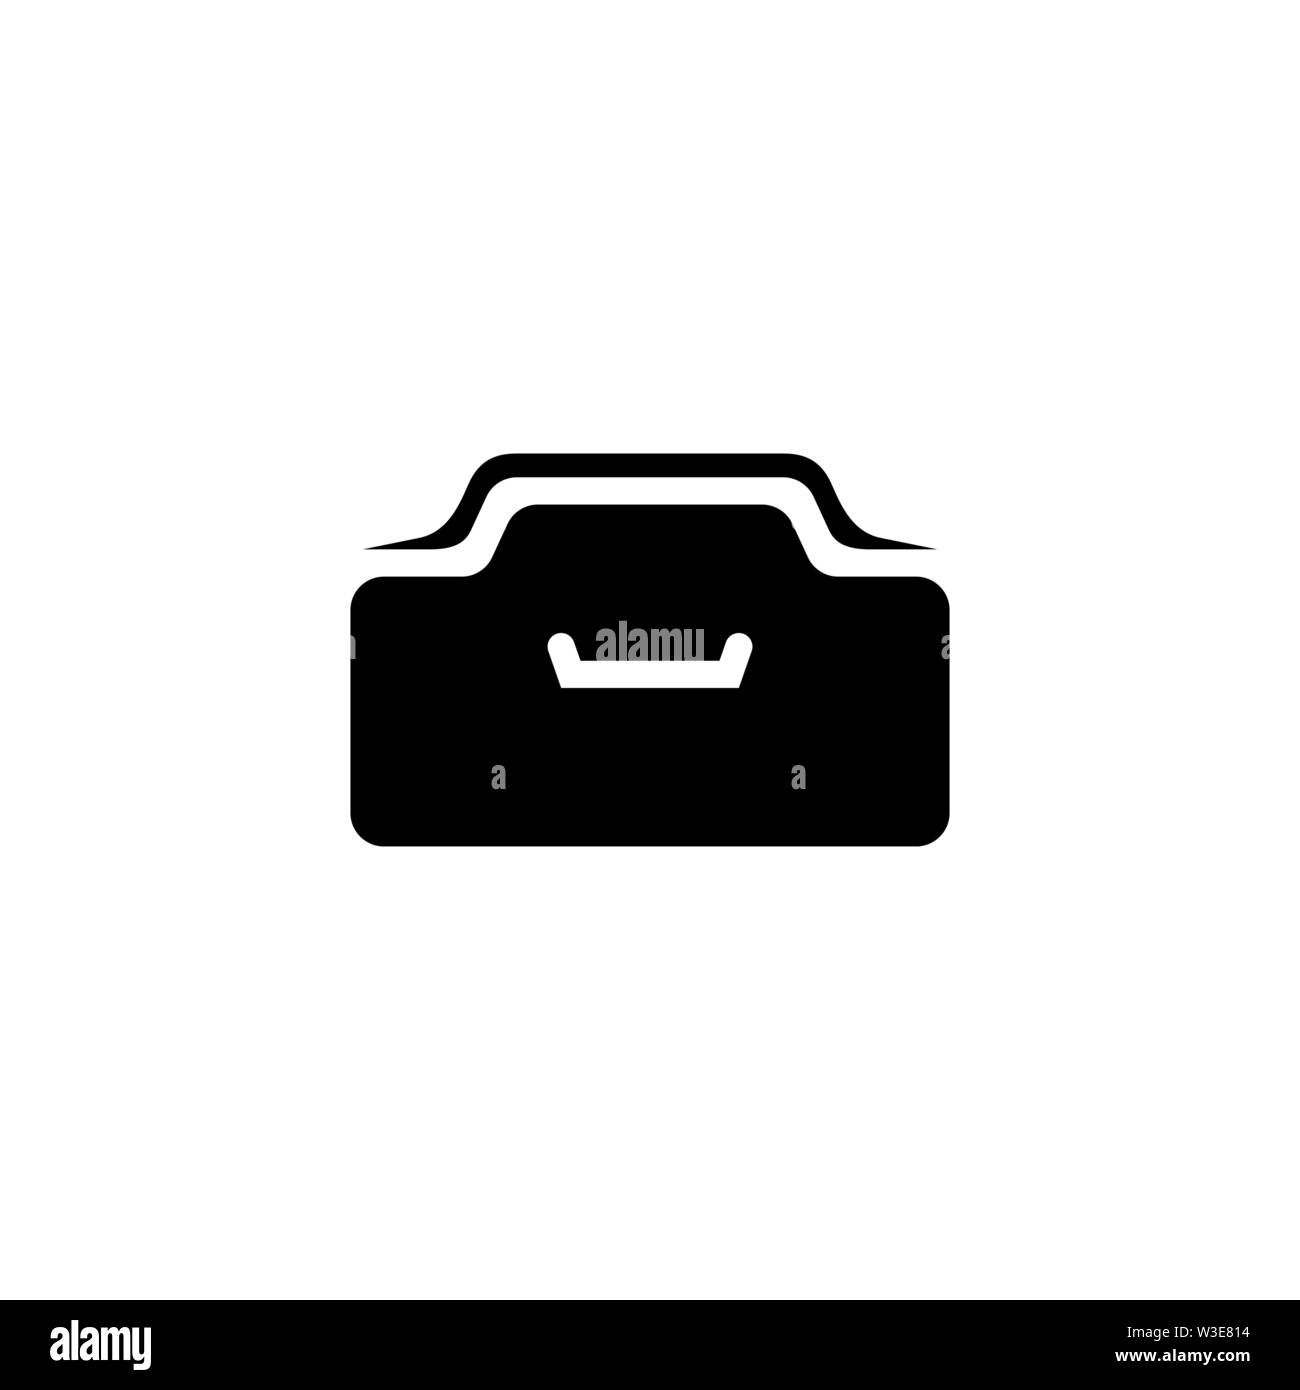 Office Drawer. Flat Vector Icon illustration. Simple black symbol on white background. Office Drawer sign design template for web and mobile UI elemen - Stock Image